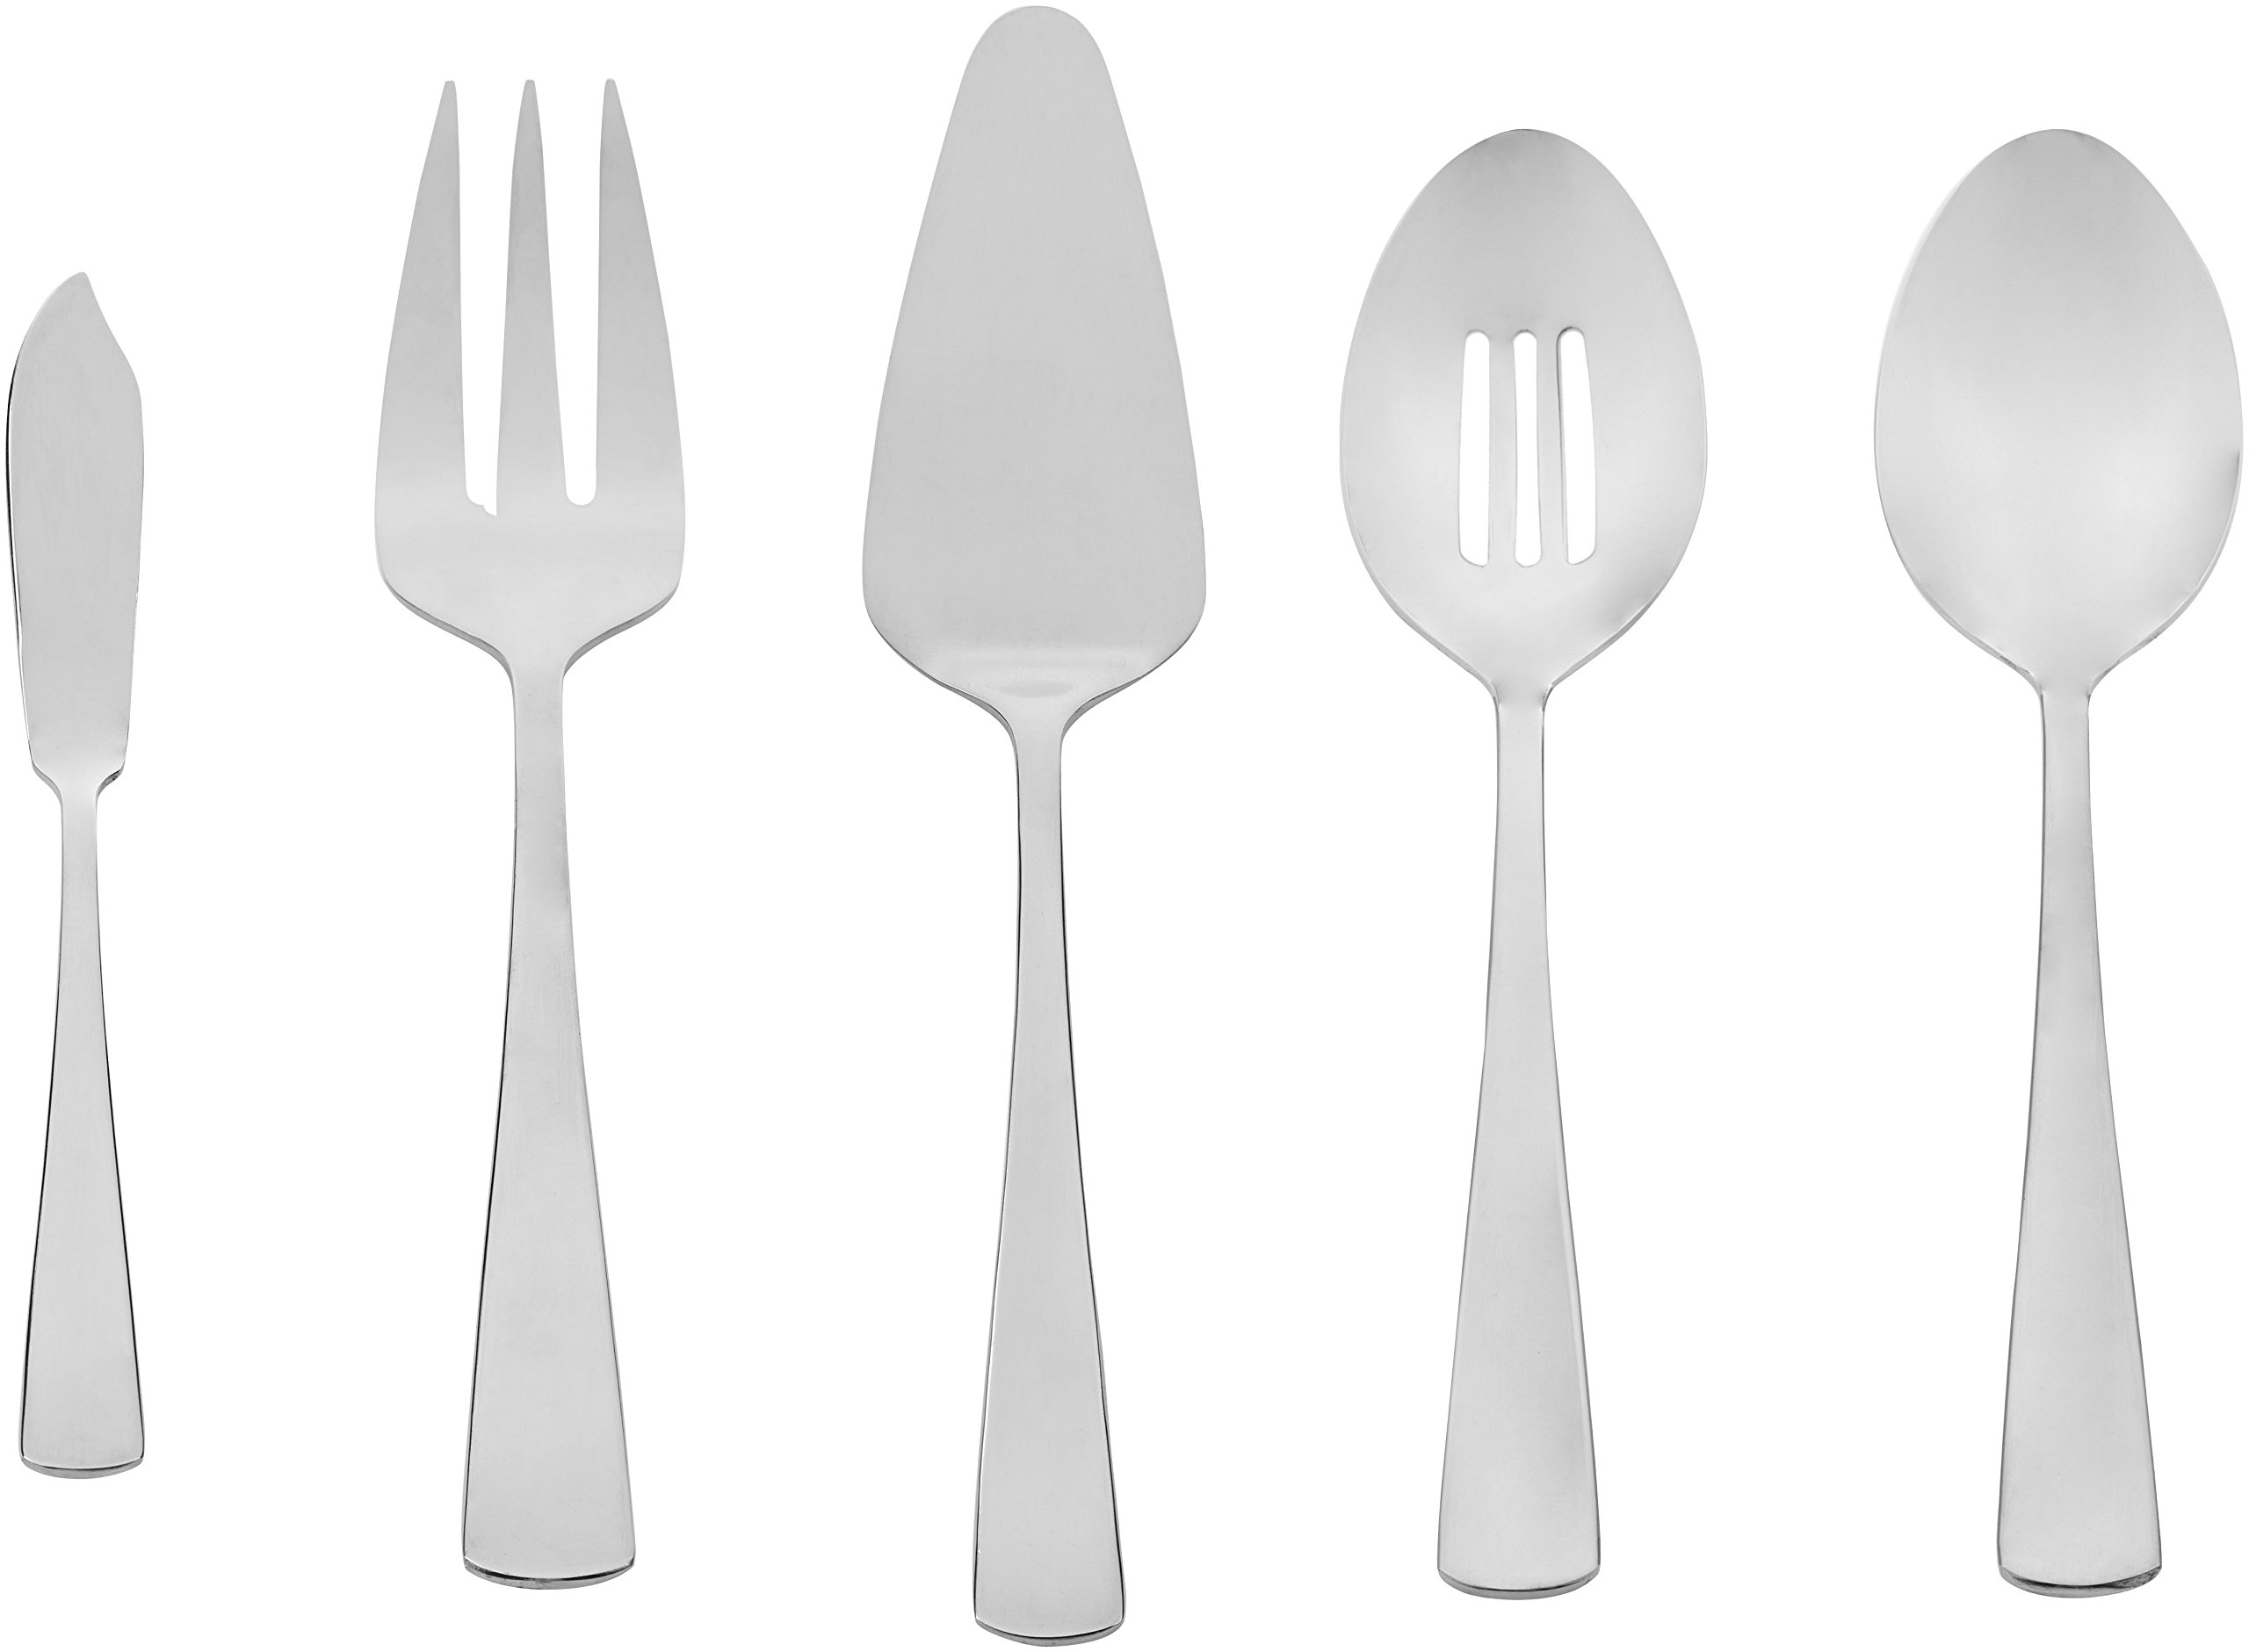 AmazonBasics 5-Piece Stainless Steel Serving Utensil Set with Square Edge by AmazonBasics